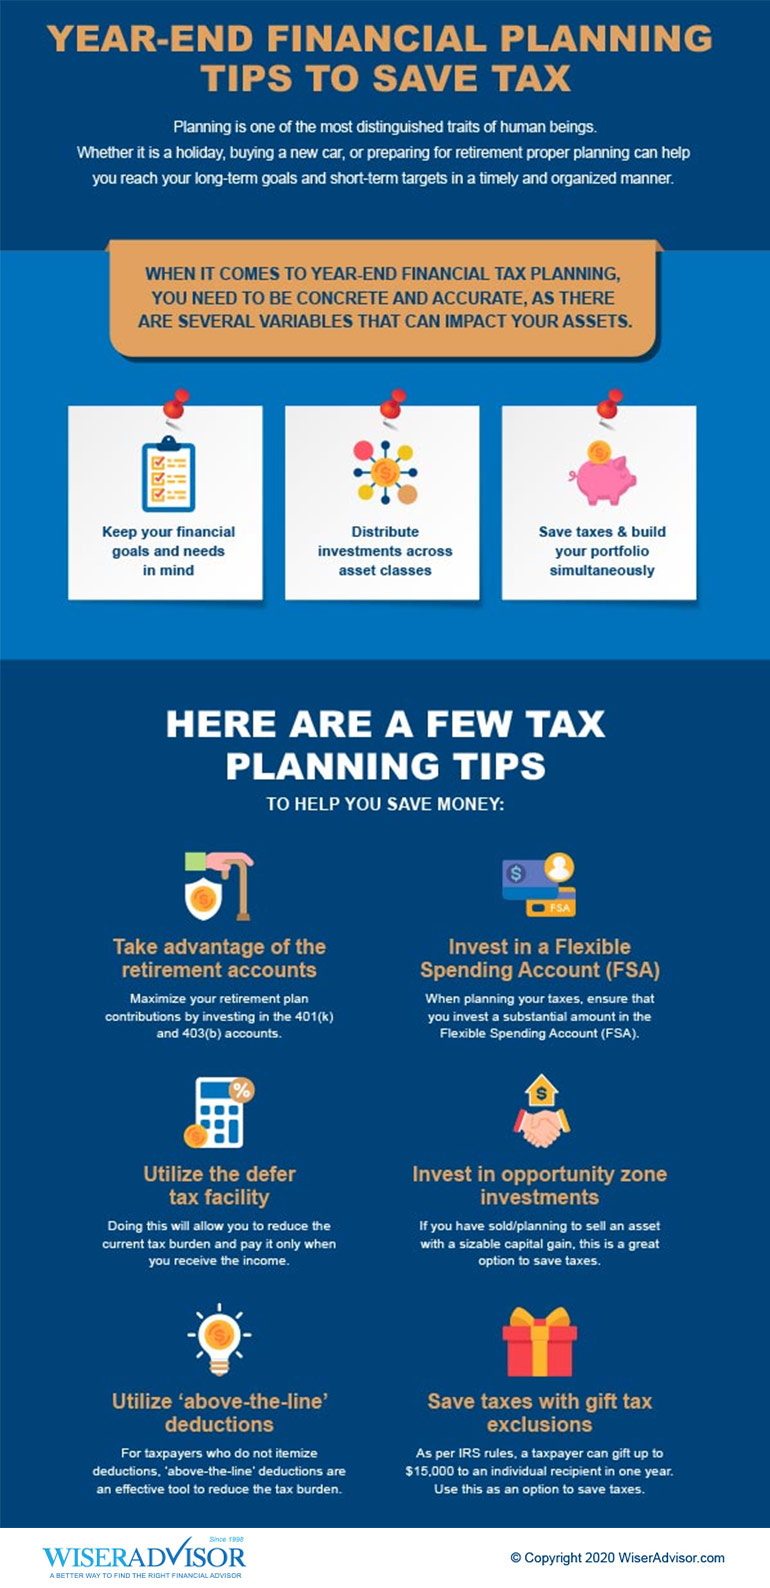 Year-End Financial Planning Tips to Save Tax